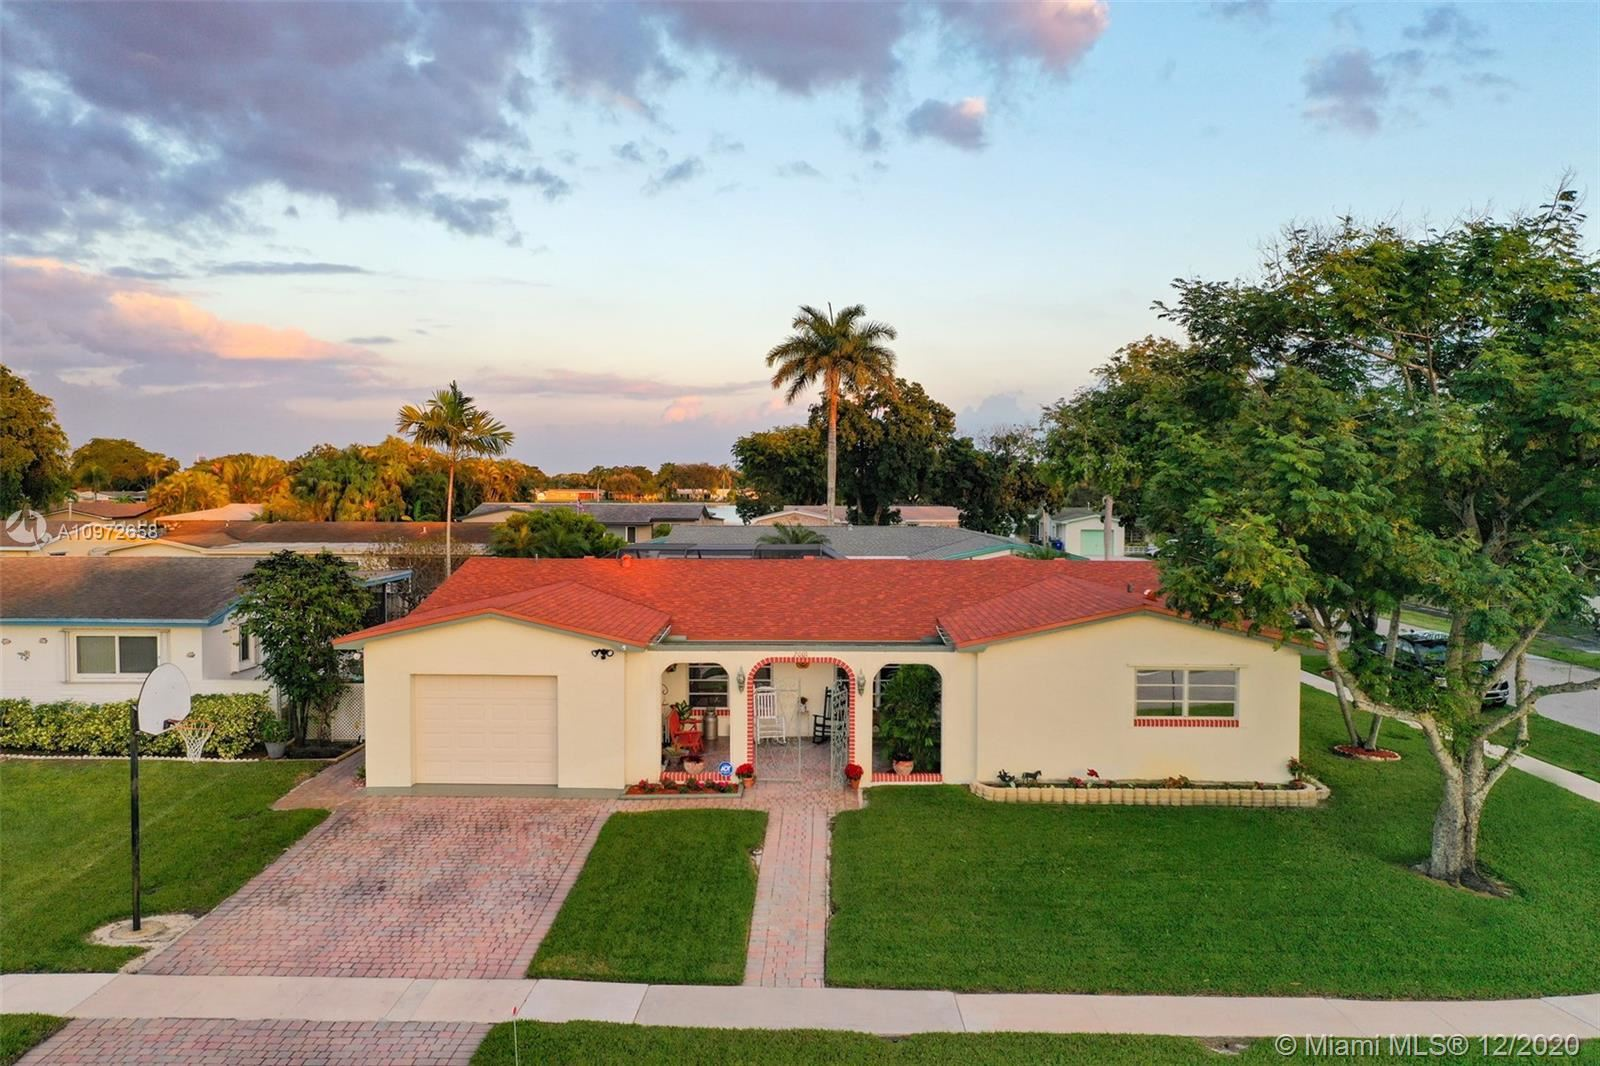 2001 NW 88th Way, Pembroke Pines, FL 33024 - #: A10972658